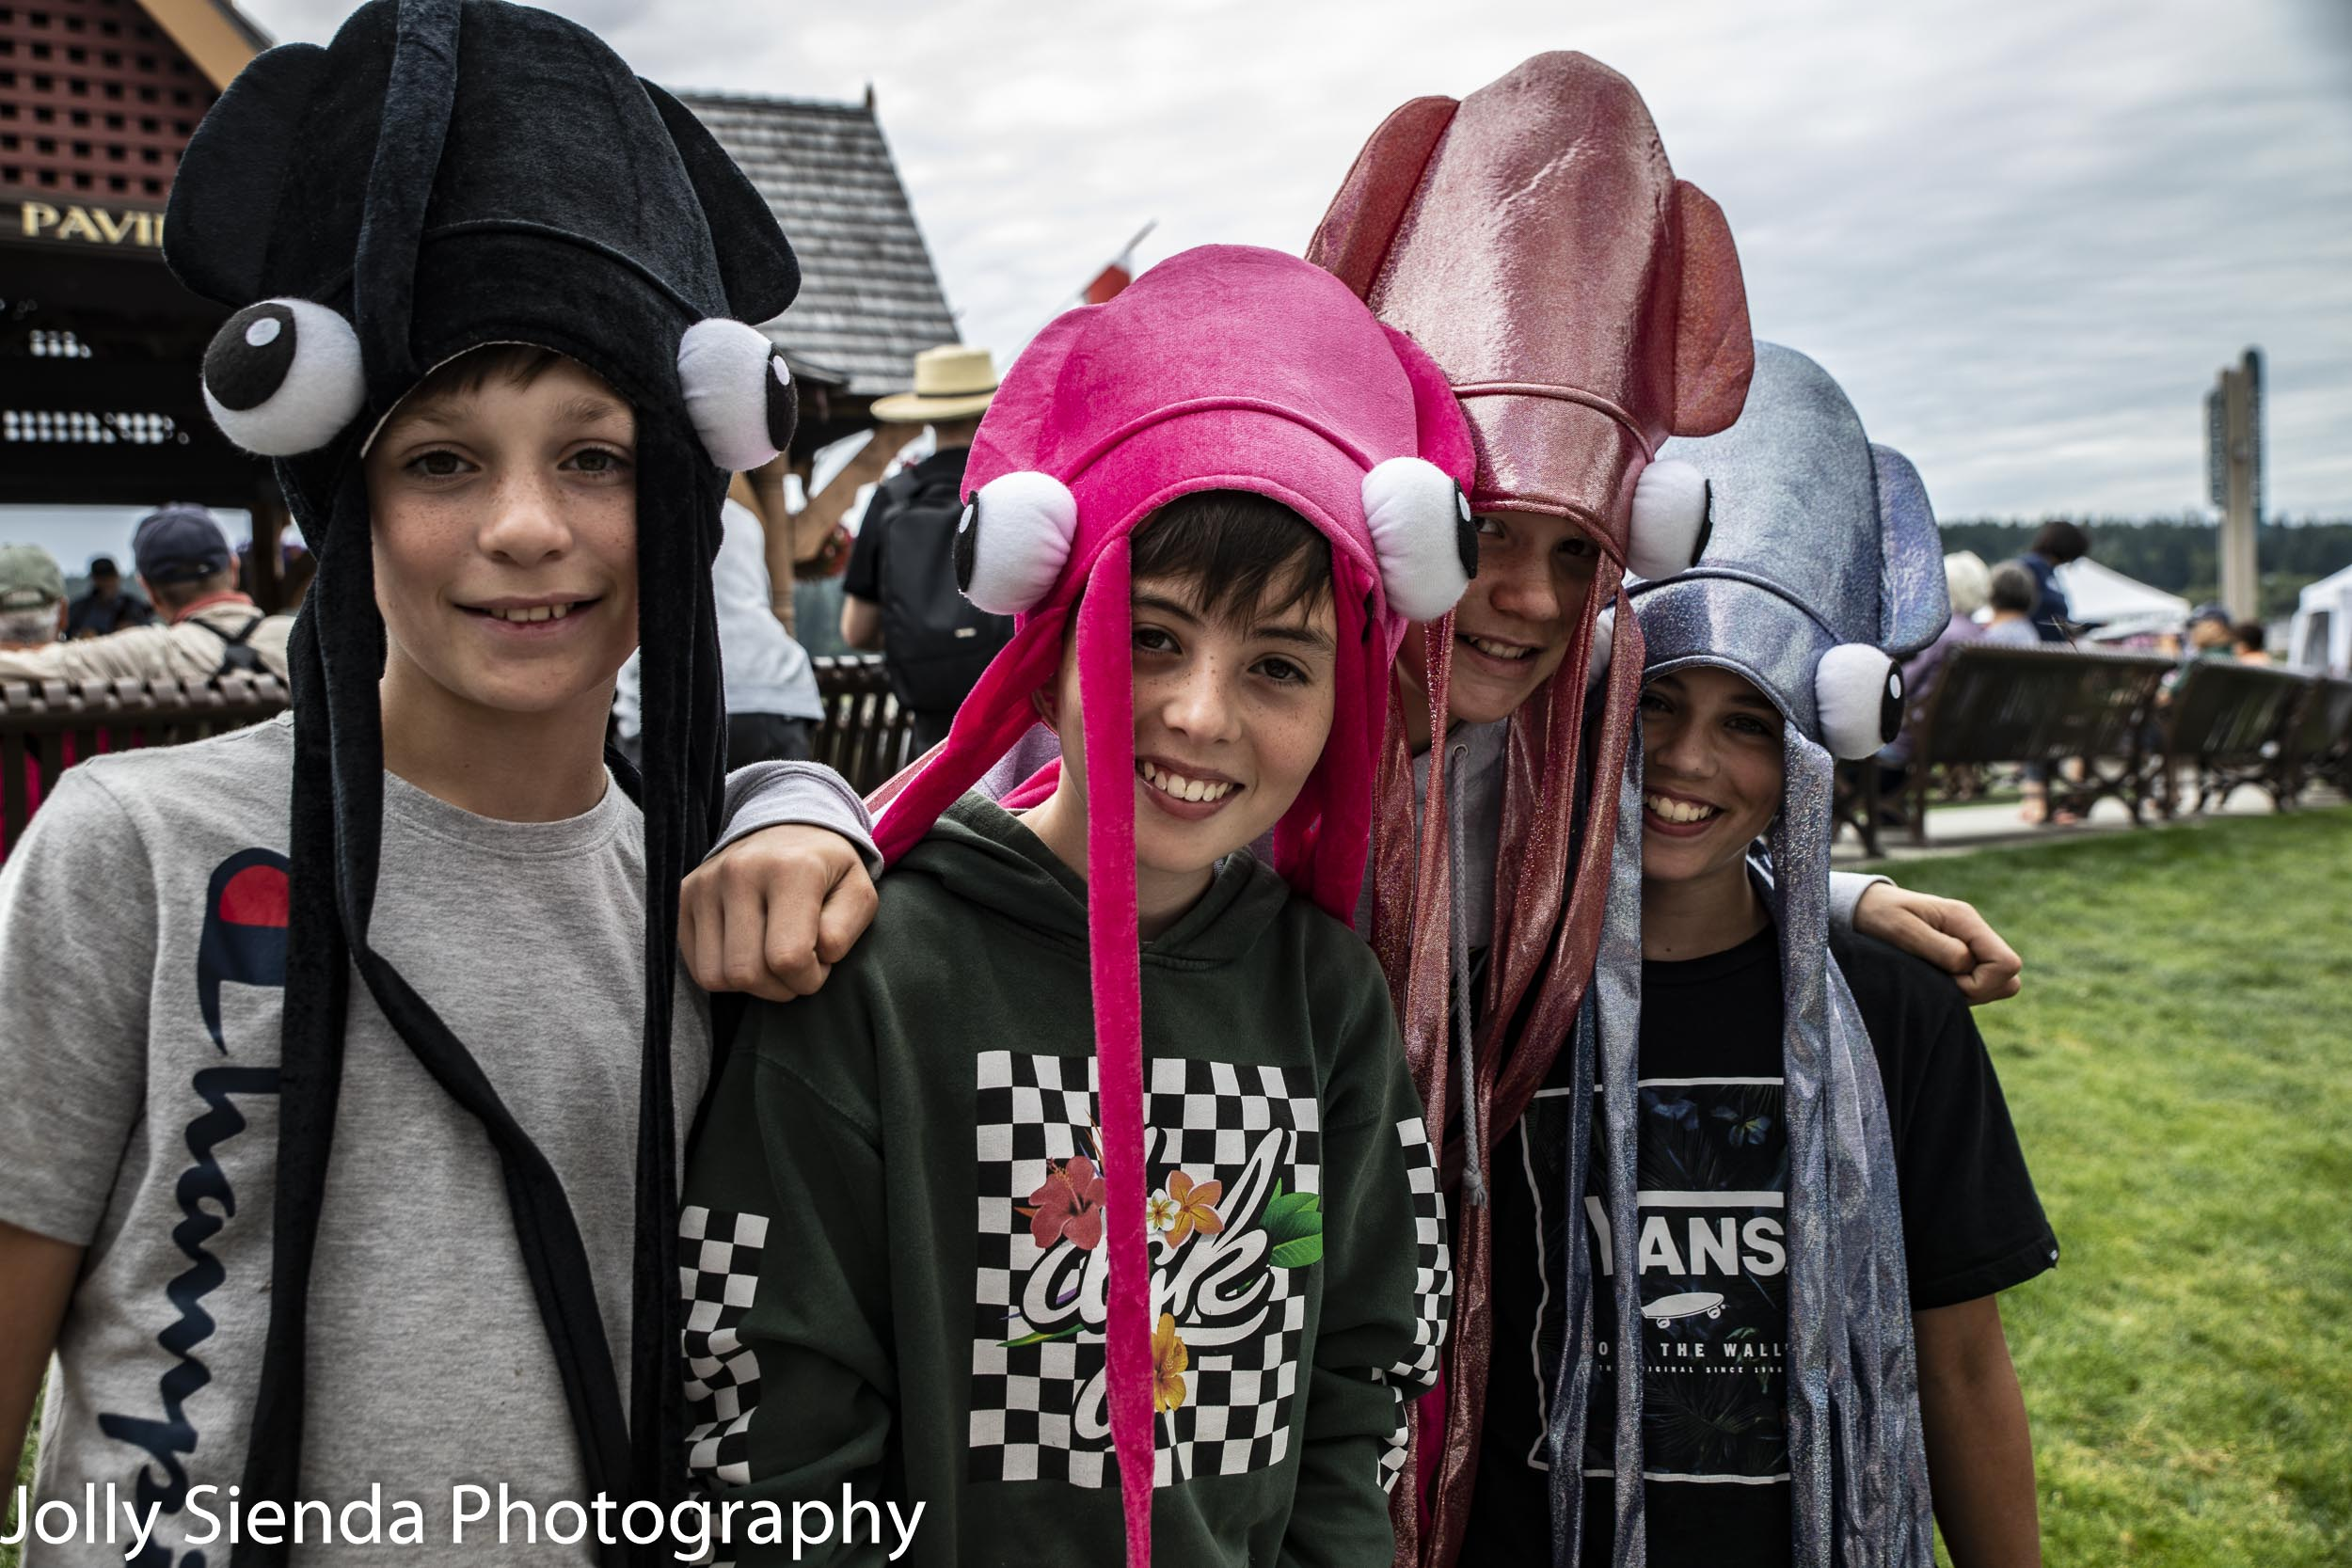 Kids with squid hats posing for a pic at the ice cream stand, Poulsbo Art Festival, Jolly Sienda Photography